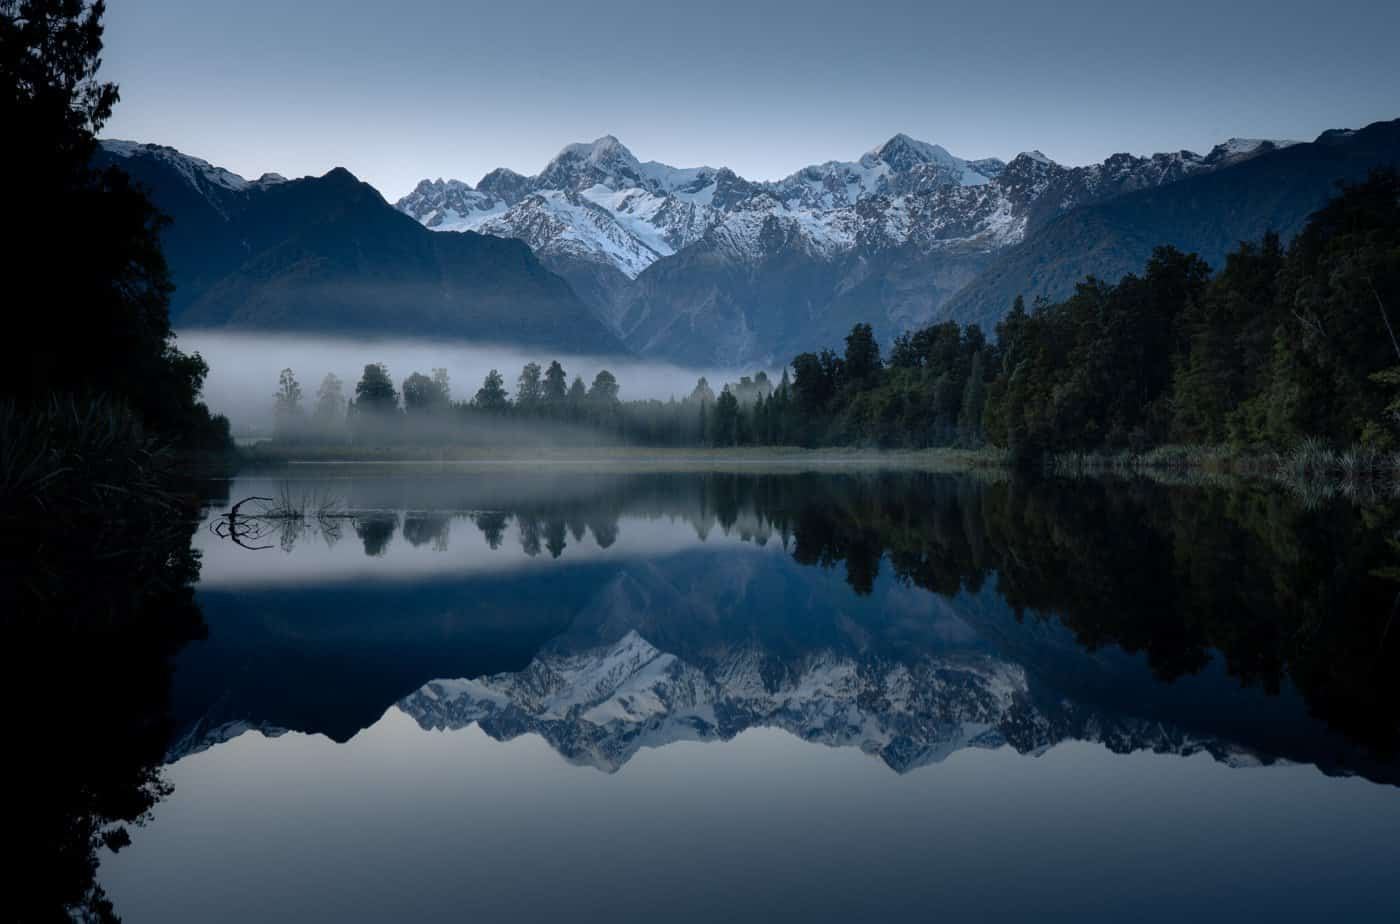 Begin Day 6 of your 7 day itinerary at Lake Matheson, famous throughout the South Island of New Zealand for its mirror-like reflections.